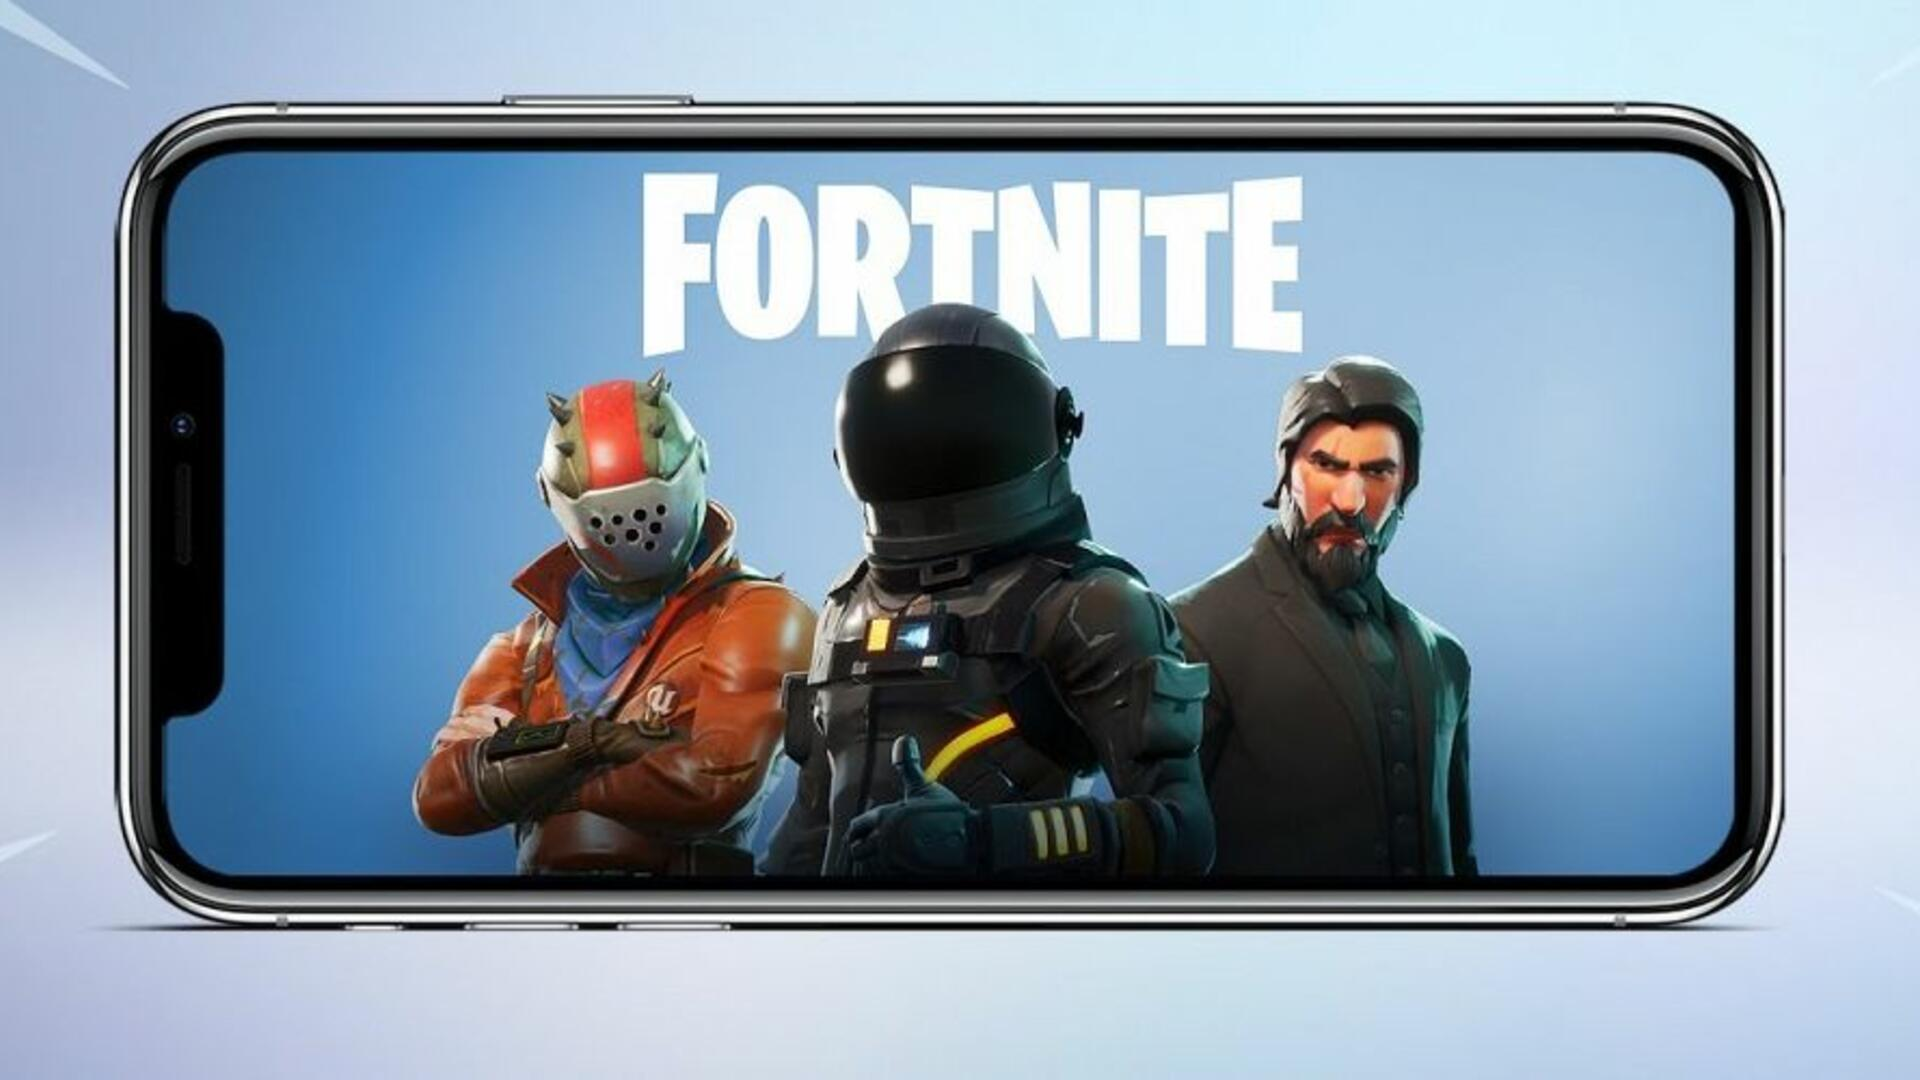 Epic Warns that Email Invites for Fortnite Android are Phishing Scams